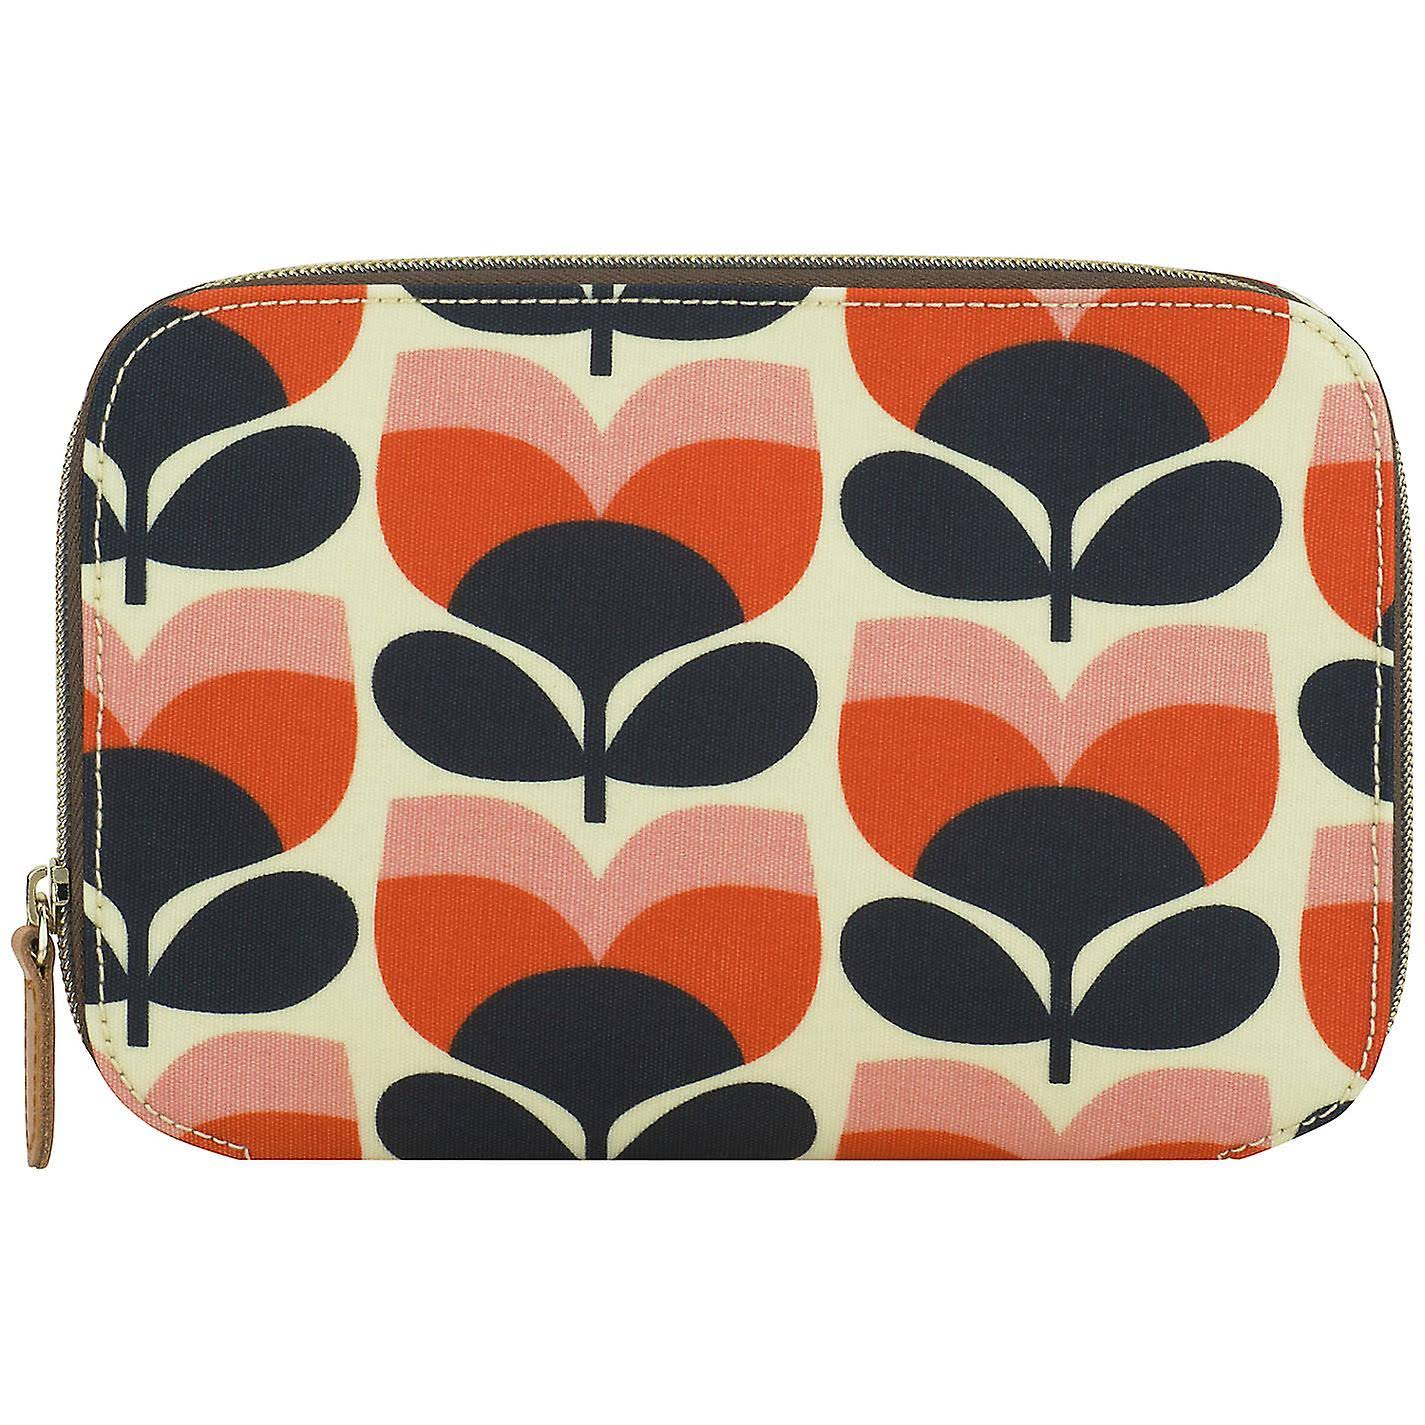 Orla Kiely Cosmetic Brush Case - Flower Stripe